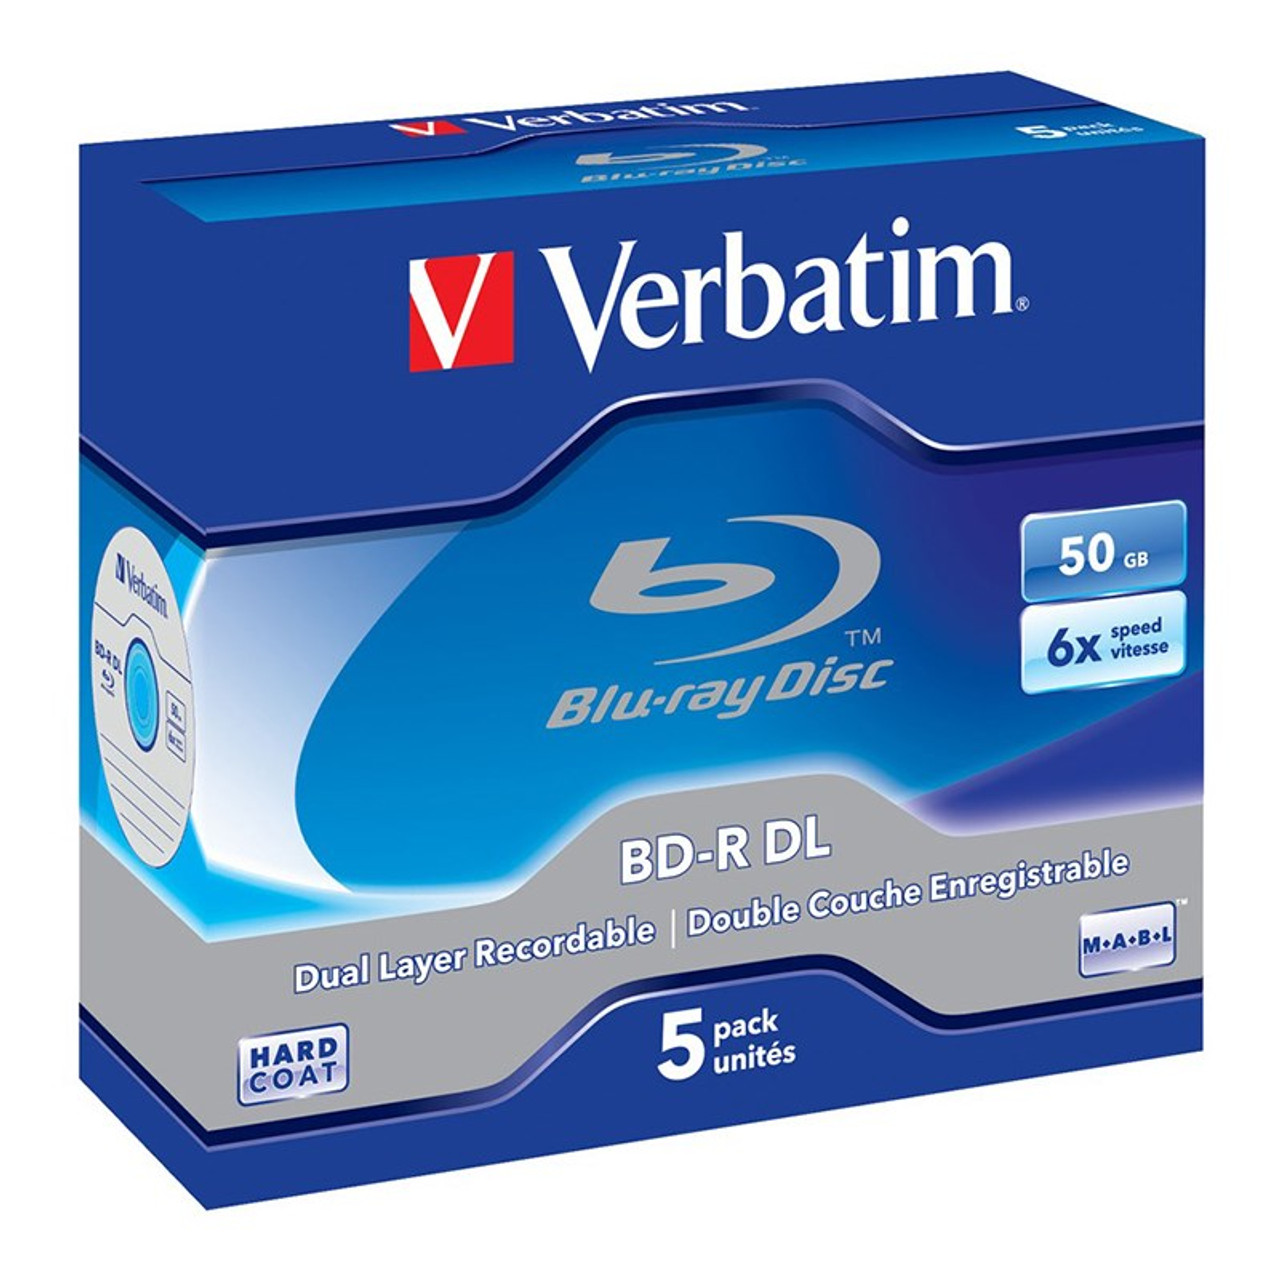 Image for Verbatim 43748 50GB Silver BD-R Dual Layer Recordable Disc - 5-Pack Case CX Computer Superstore